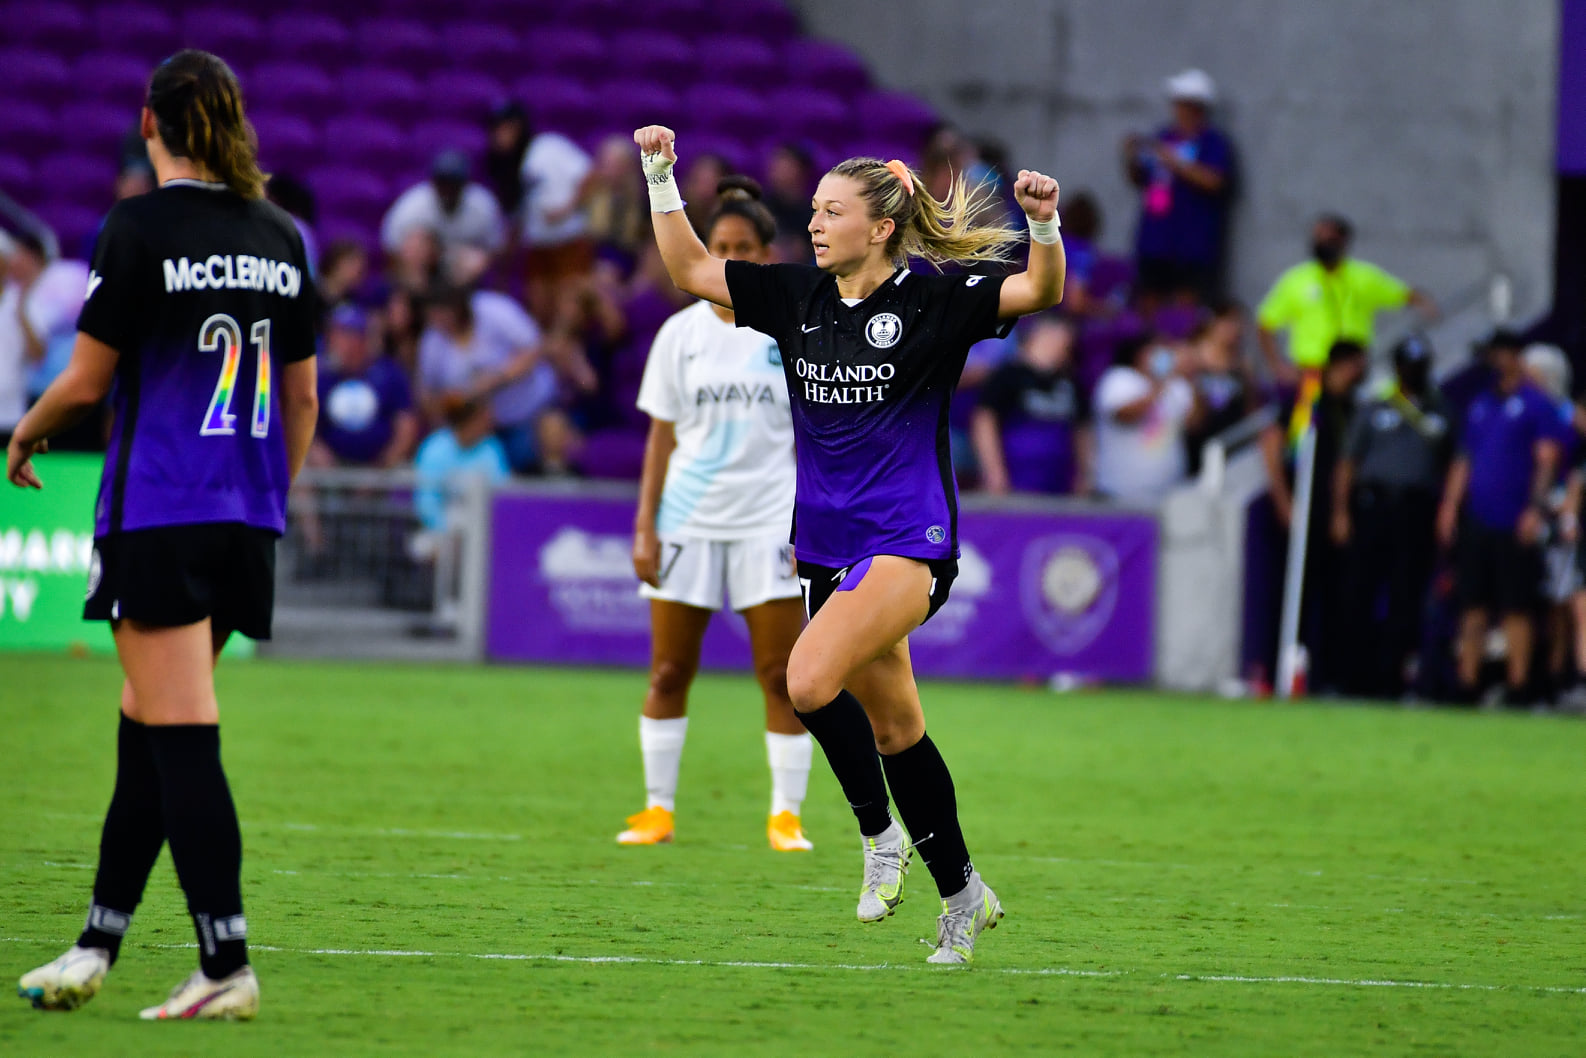 Orlando Pride defender Courtney Petersen celebrates after scoring the equalizer in the 90th minute against Gotham at Exploria Stadium Sunday, June 20, 2021. Photo: Harry Castiblanco/Florida National News.